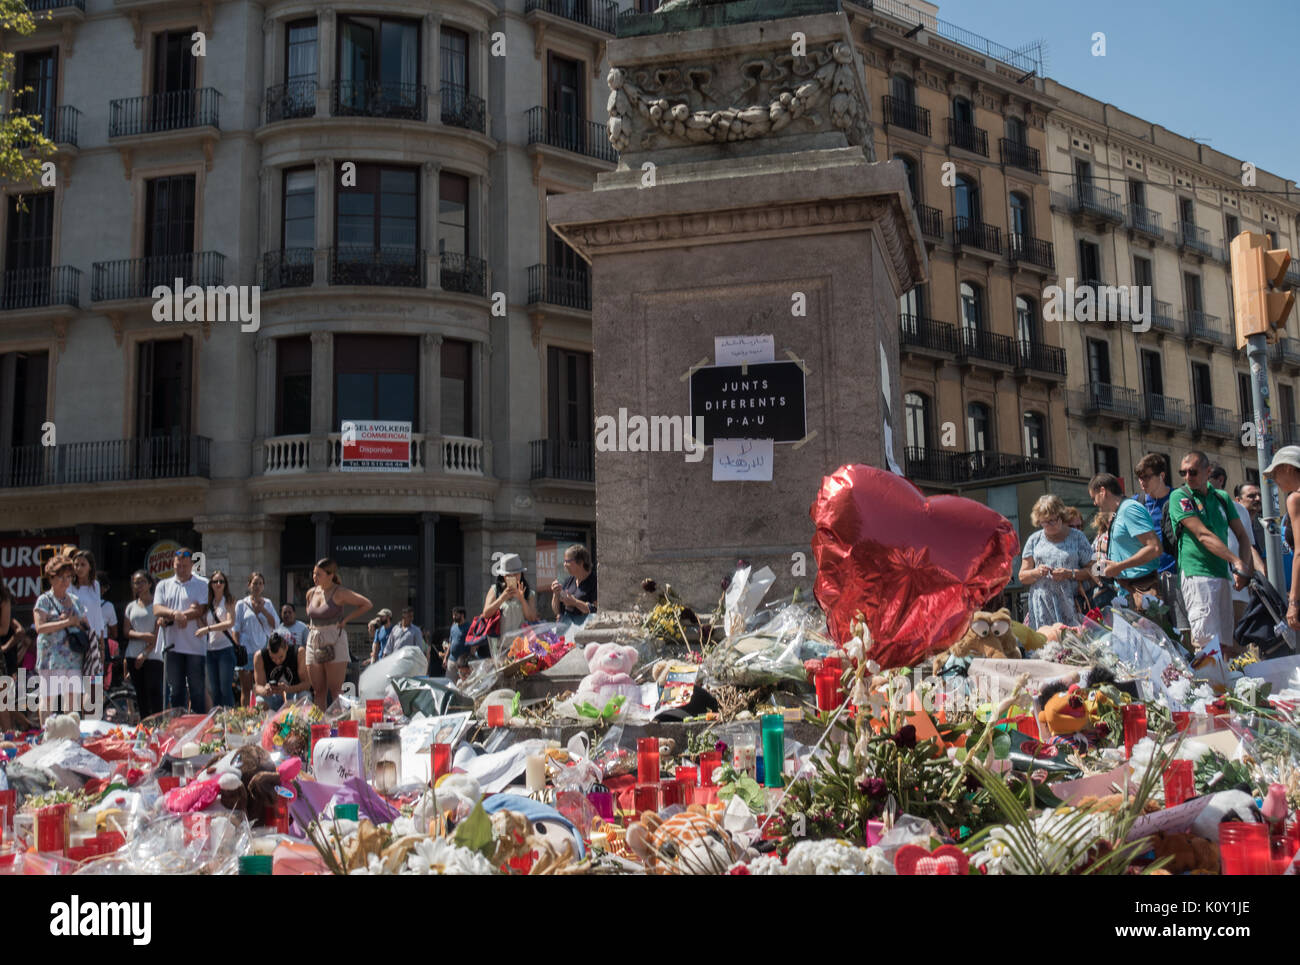 Memorial for victims of terror attacks in Las Ramblas in Barcelona,piety place,candles,terrorist attack Stock Photo